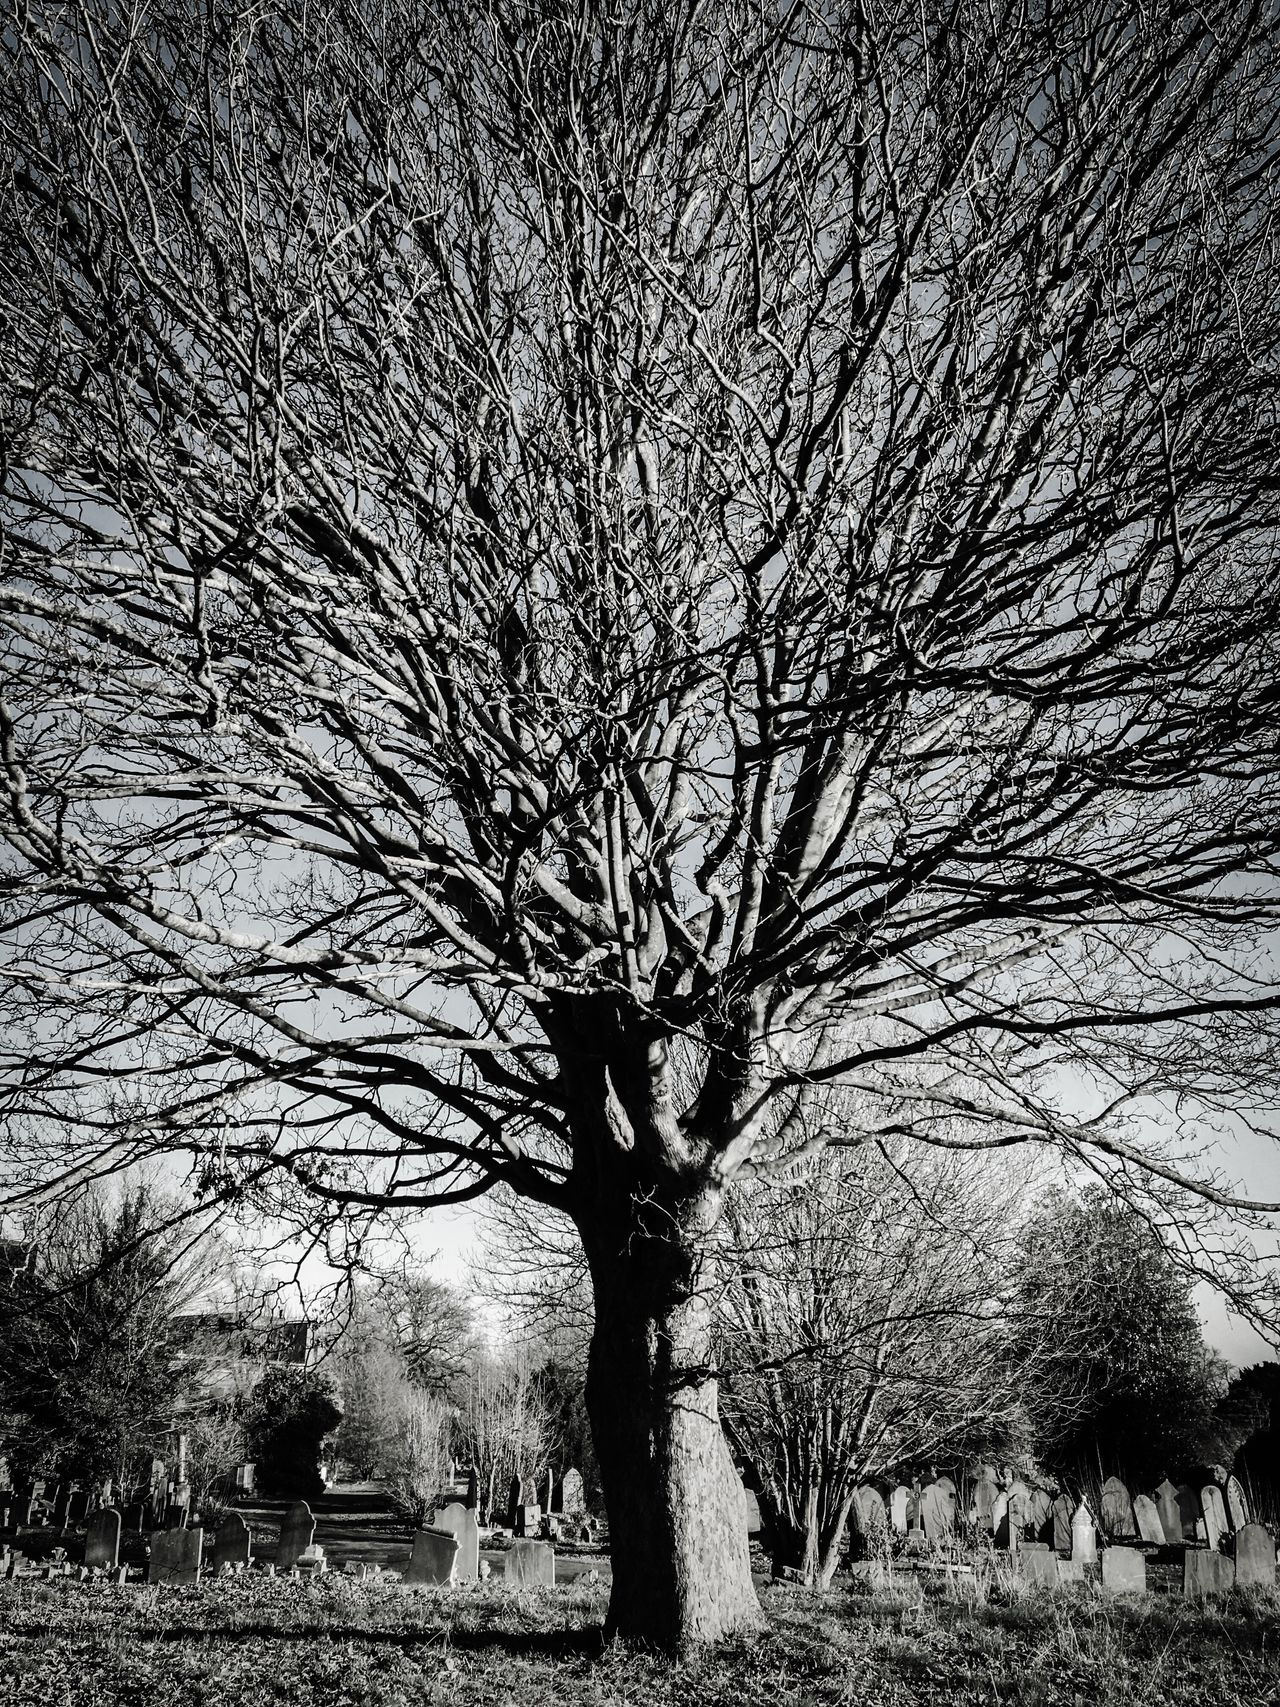 Moody Tree Majestic Tree Crown Impressive Tree Black And White Silver  Black And White Photography Time Stands Still Graveyard Bare Tree Branch Nature Tree Trunk Outdoors Sky Growth Tranquility No People Beauty In Nature Scenics Day Willow Tree Huge Cemetery Photography Cemetery_shots Cemetery